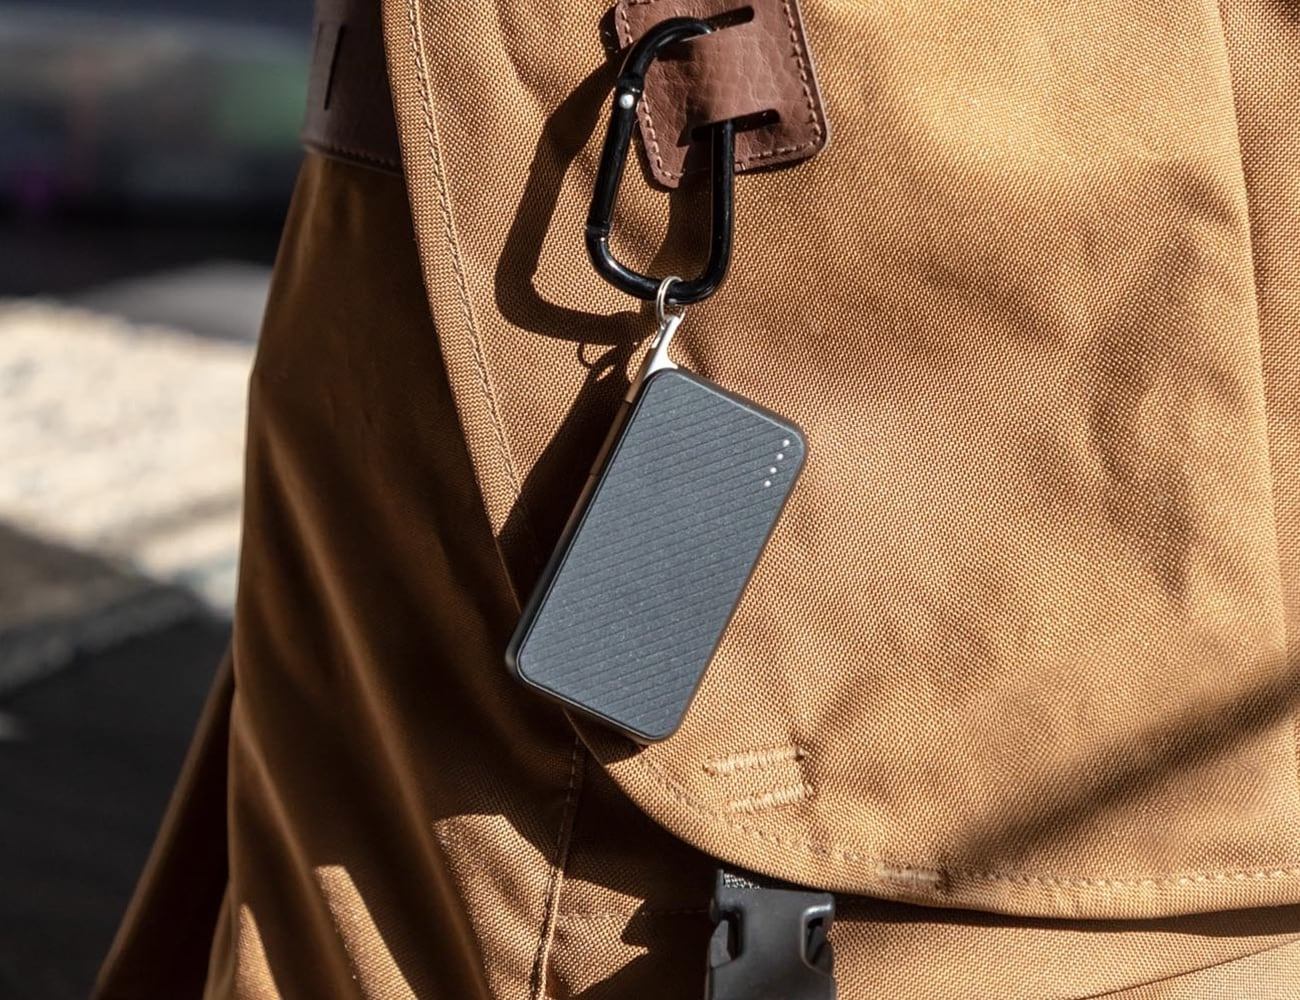 mophie Powerstation Keychain Power Bank charges your smartphone on the go